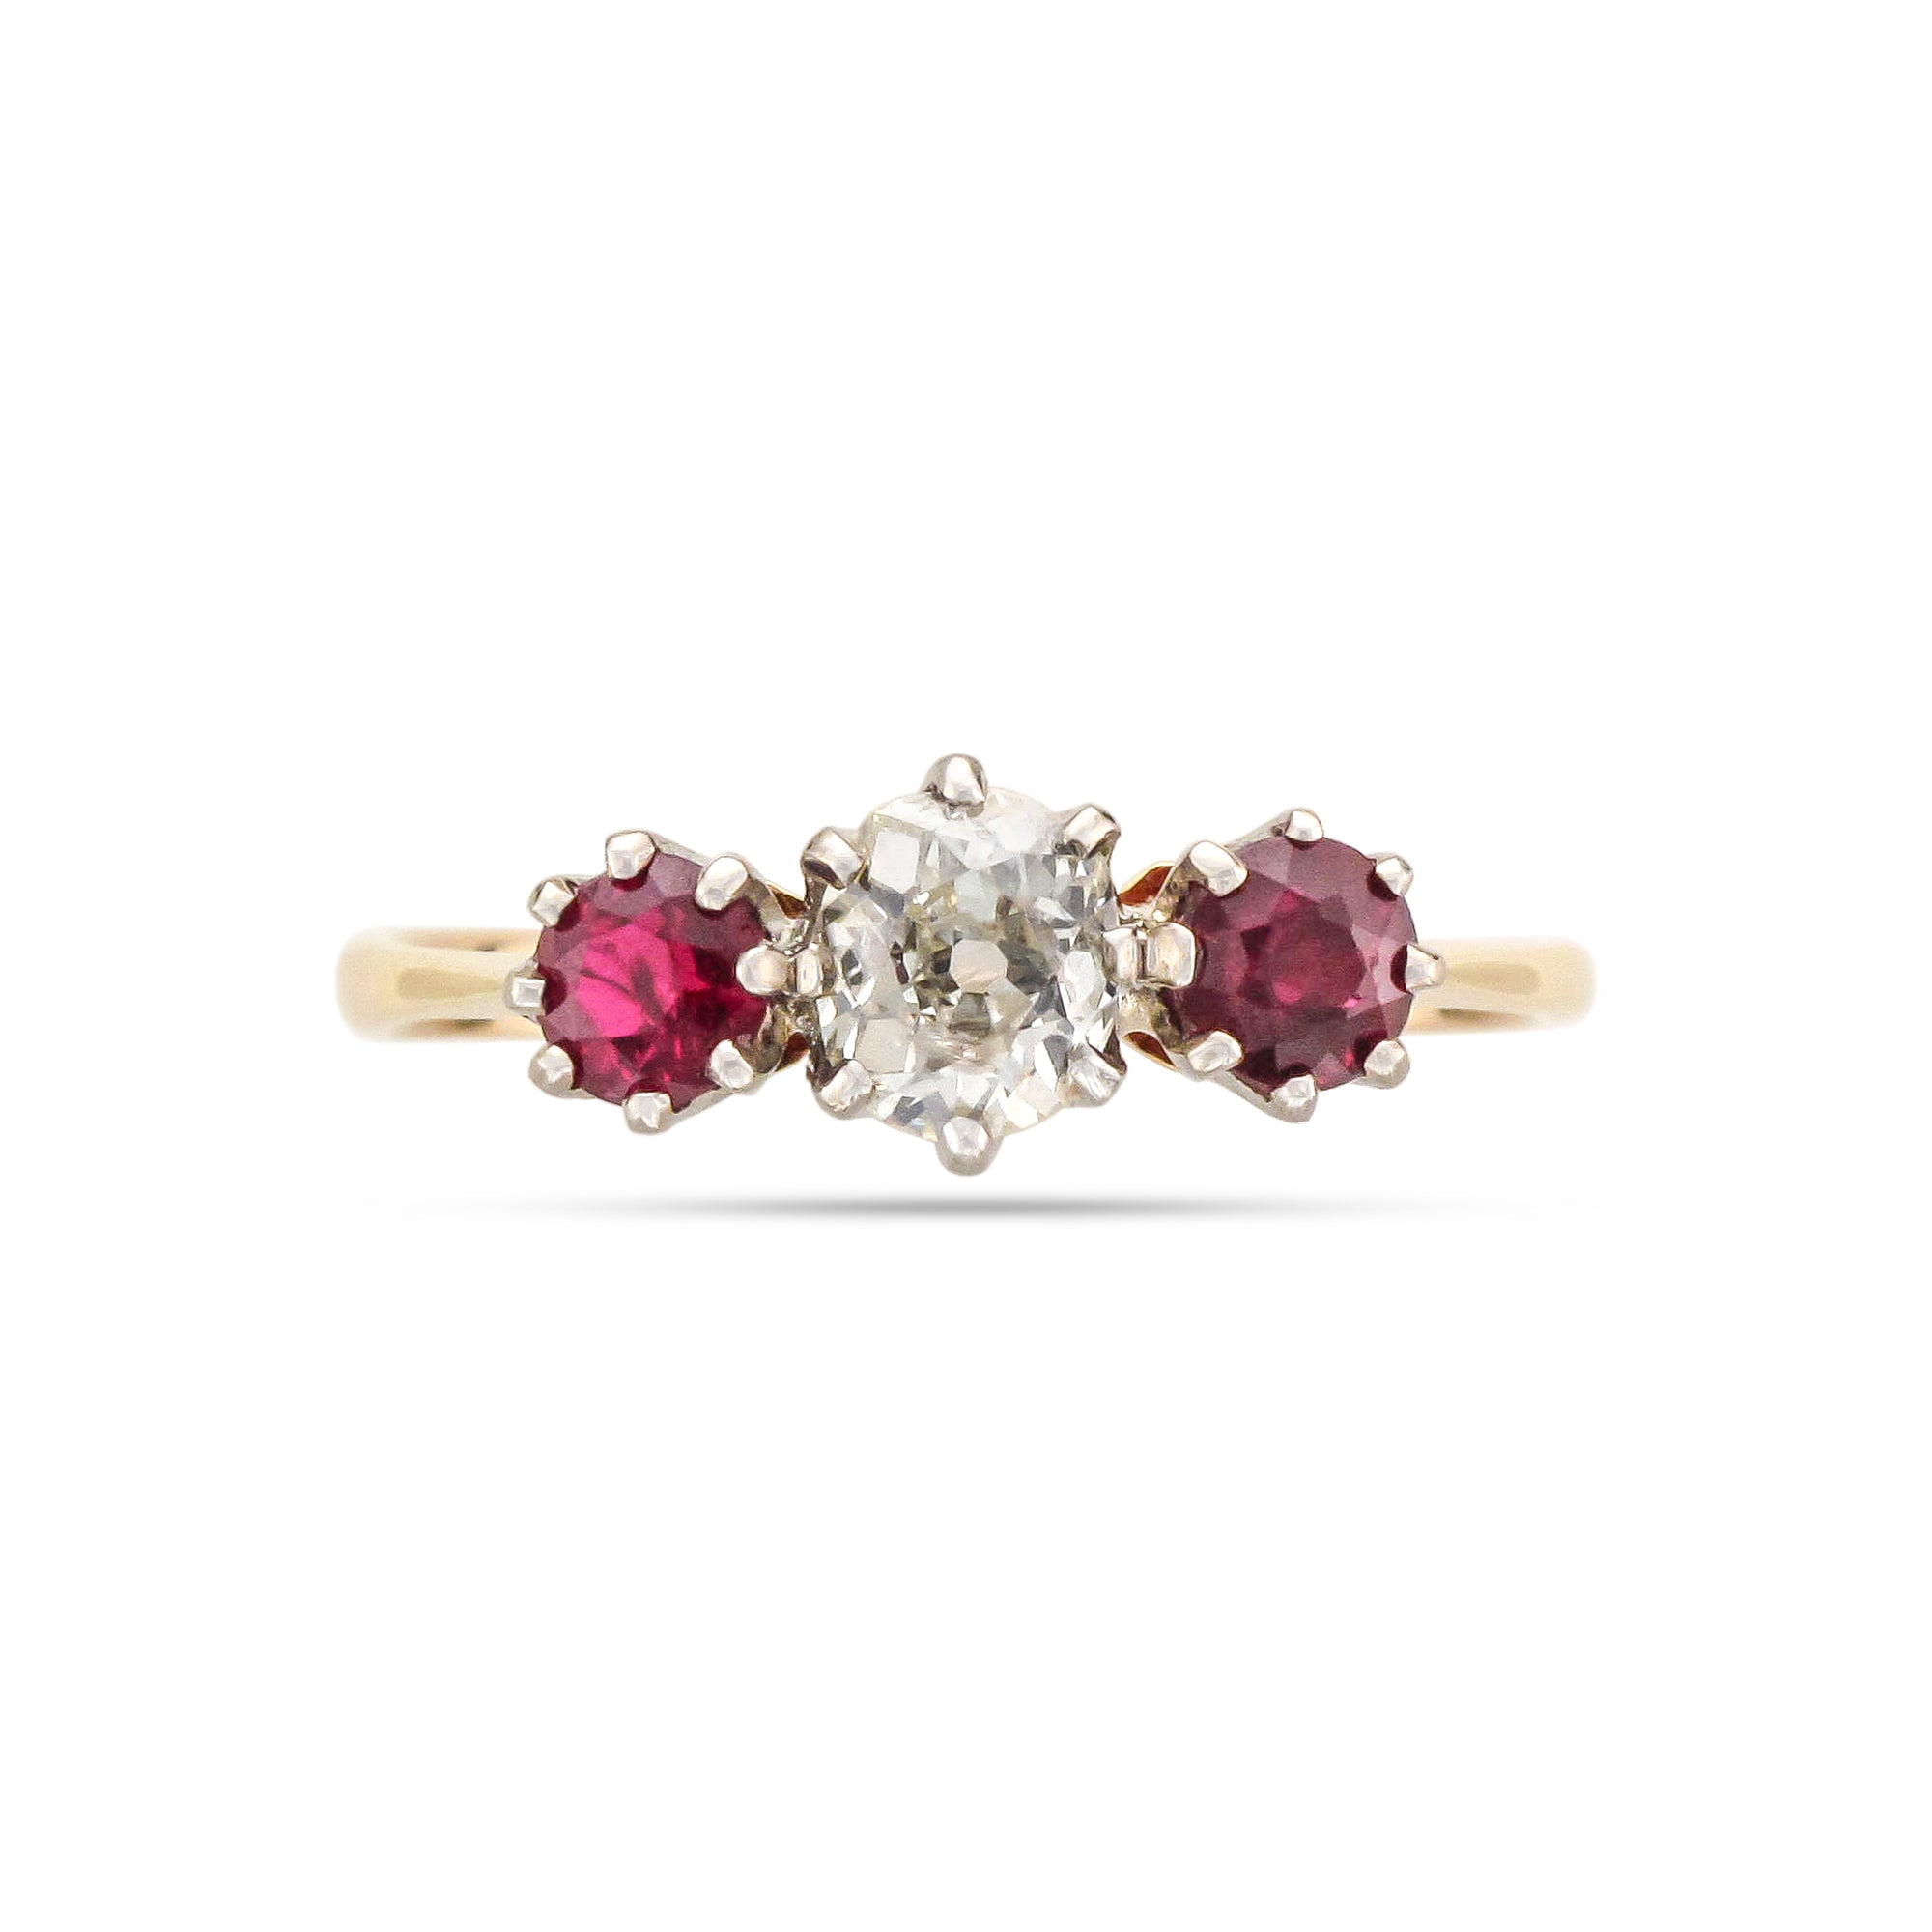 Vintage 18ct Yellow Gold Three Stone Ruby and Diamond Ring